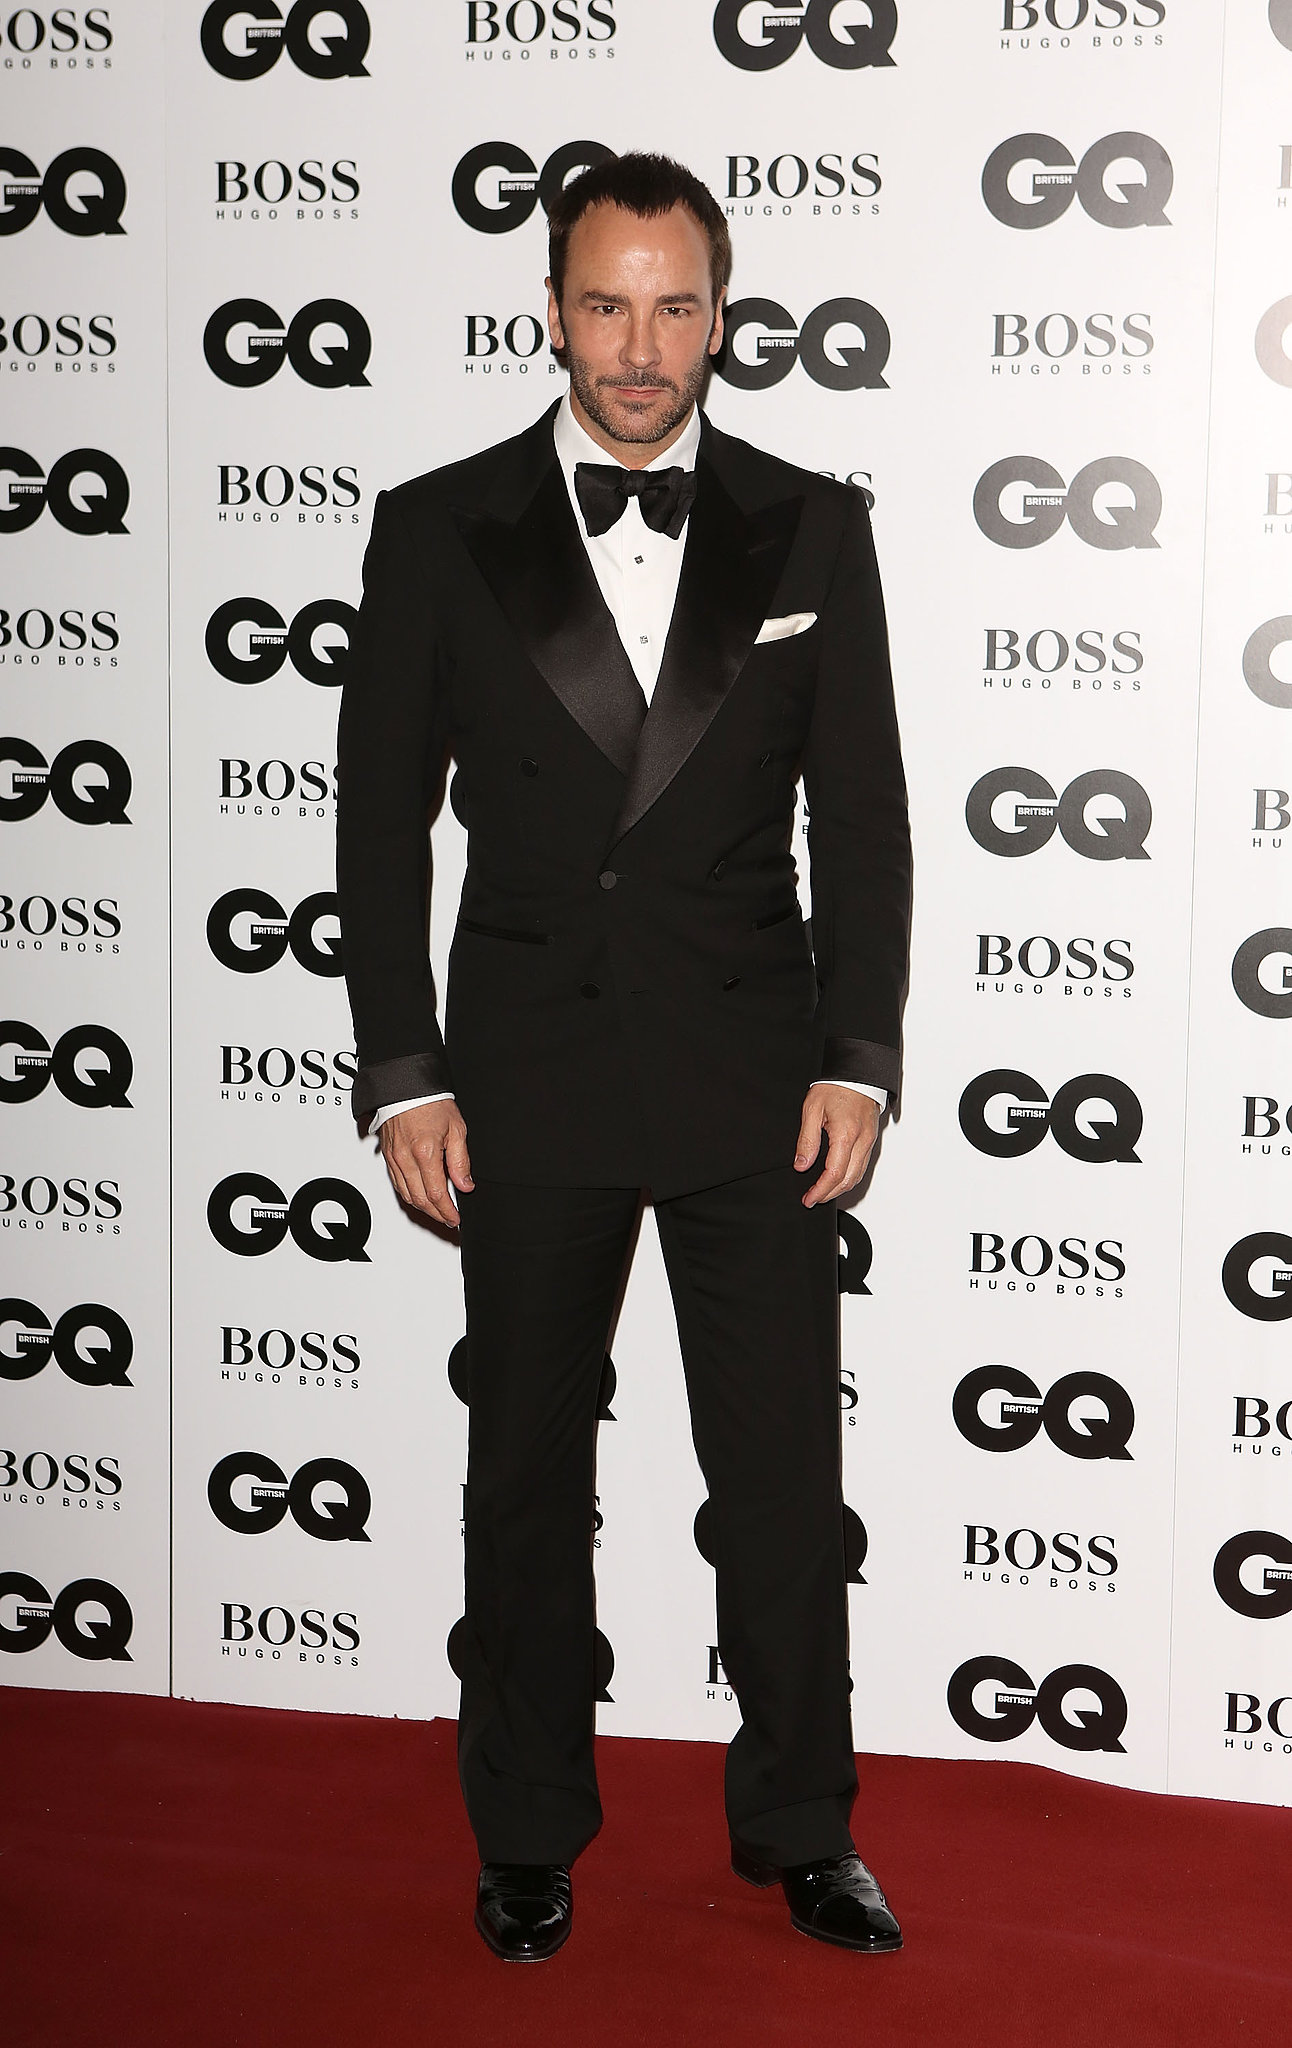 Tom Ford looked classic in his suit and tie while at the GQ Men of the Year Awards to receive his statue from Justin Timberlake.